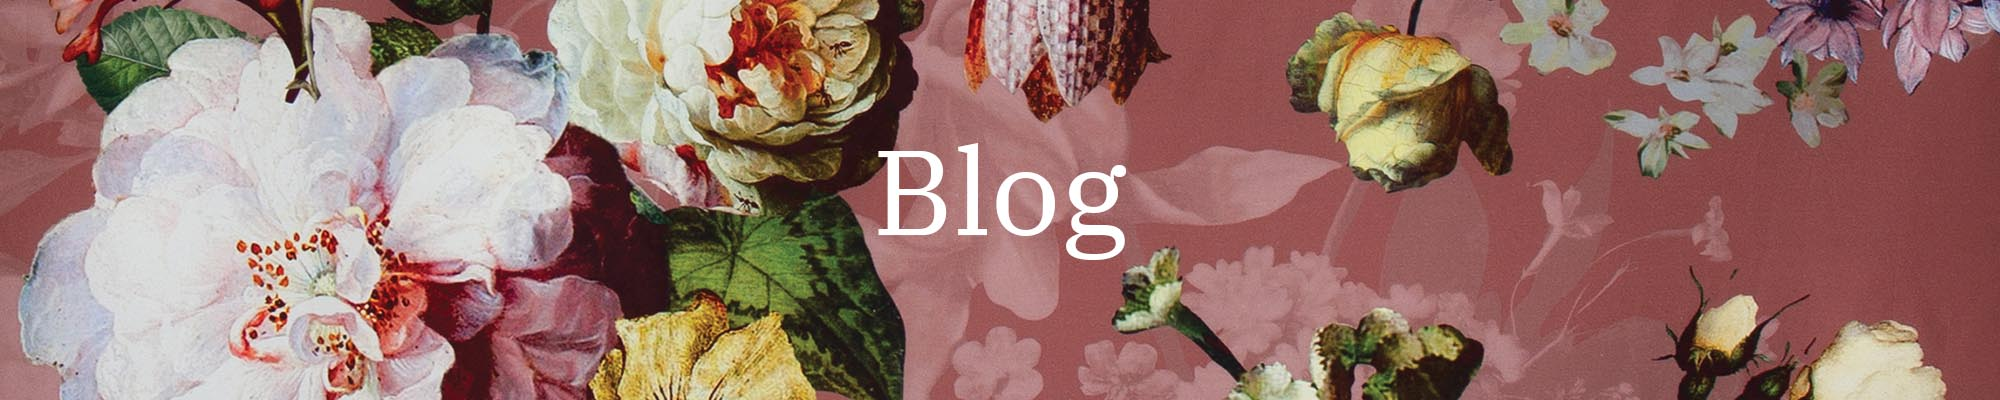 Blog Overview